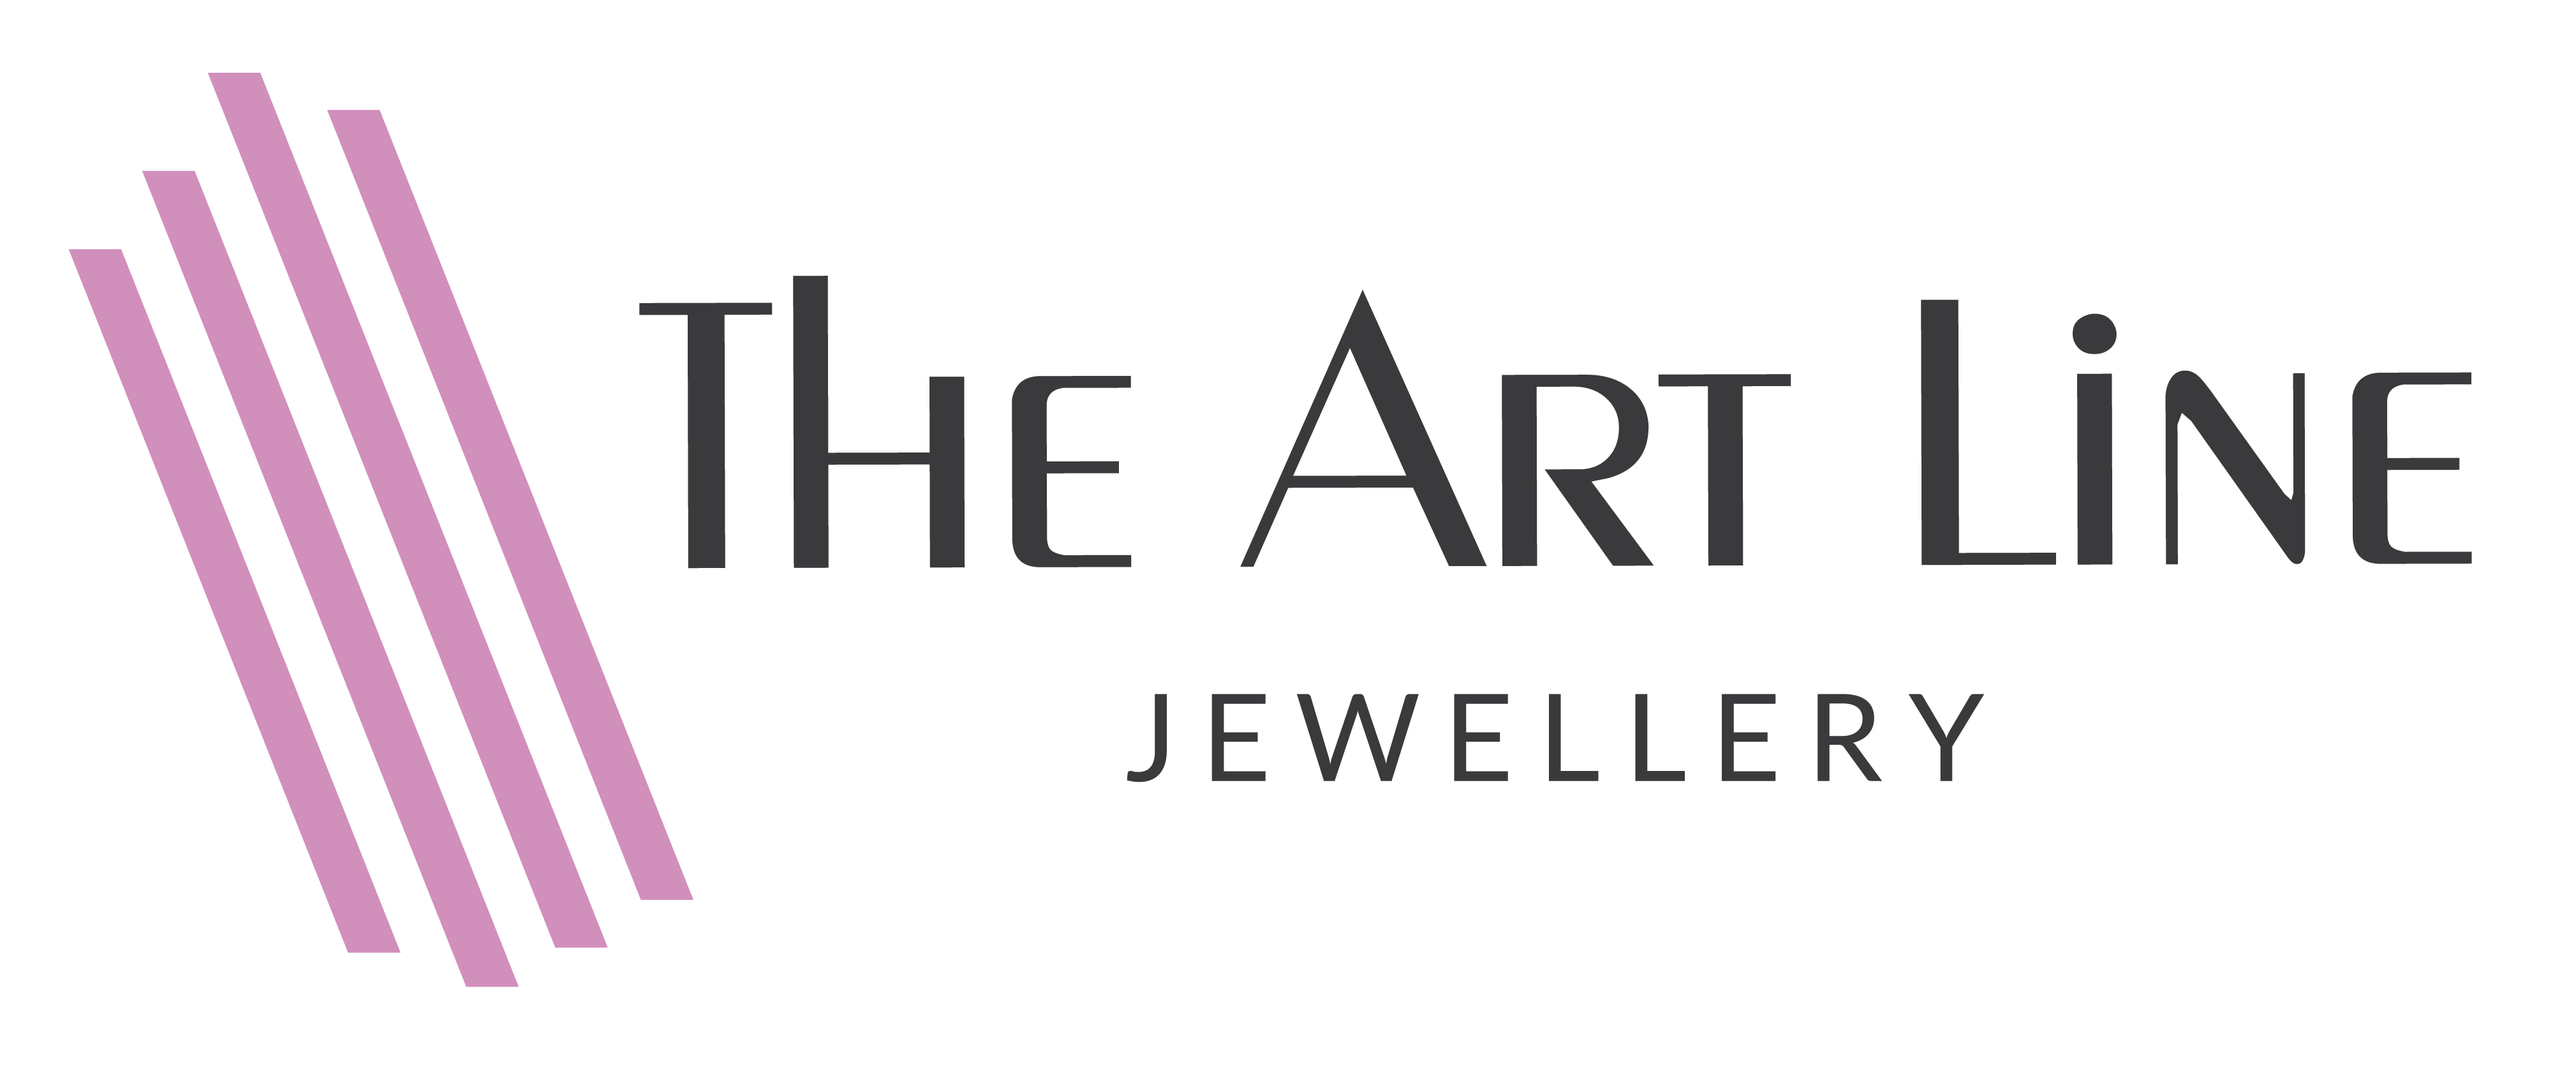 The Art Line Jewellery